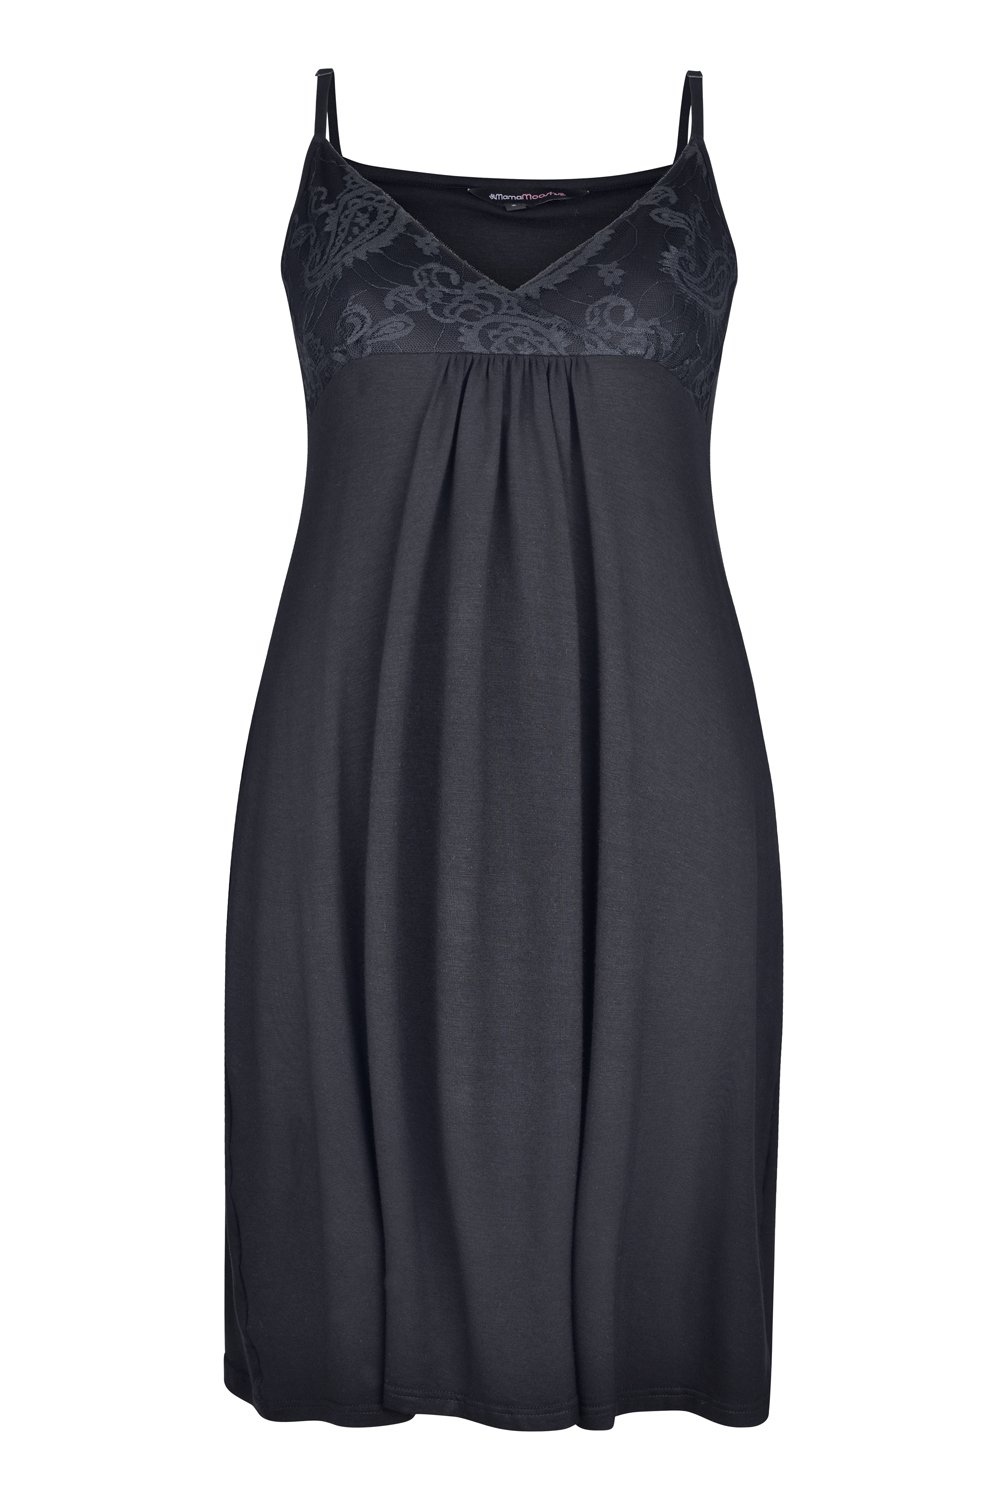 04ba621c569 Indulgence Nightdress in Jet Black (Maternity   Nursing) (Large - UK  14-16)  Amazon.co.uk  Baby